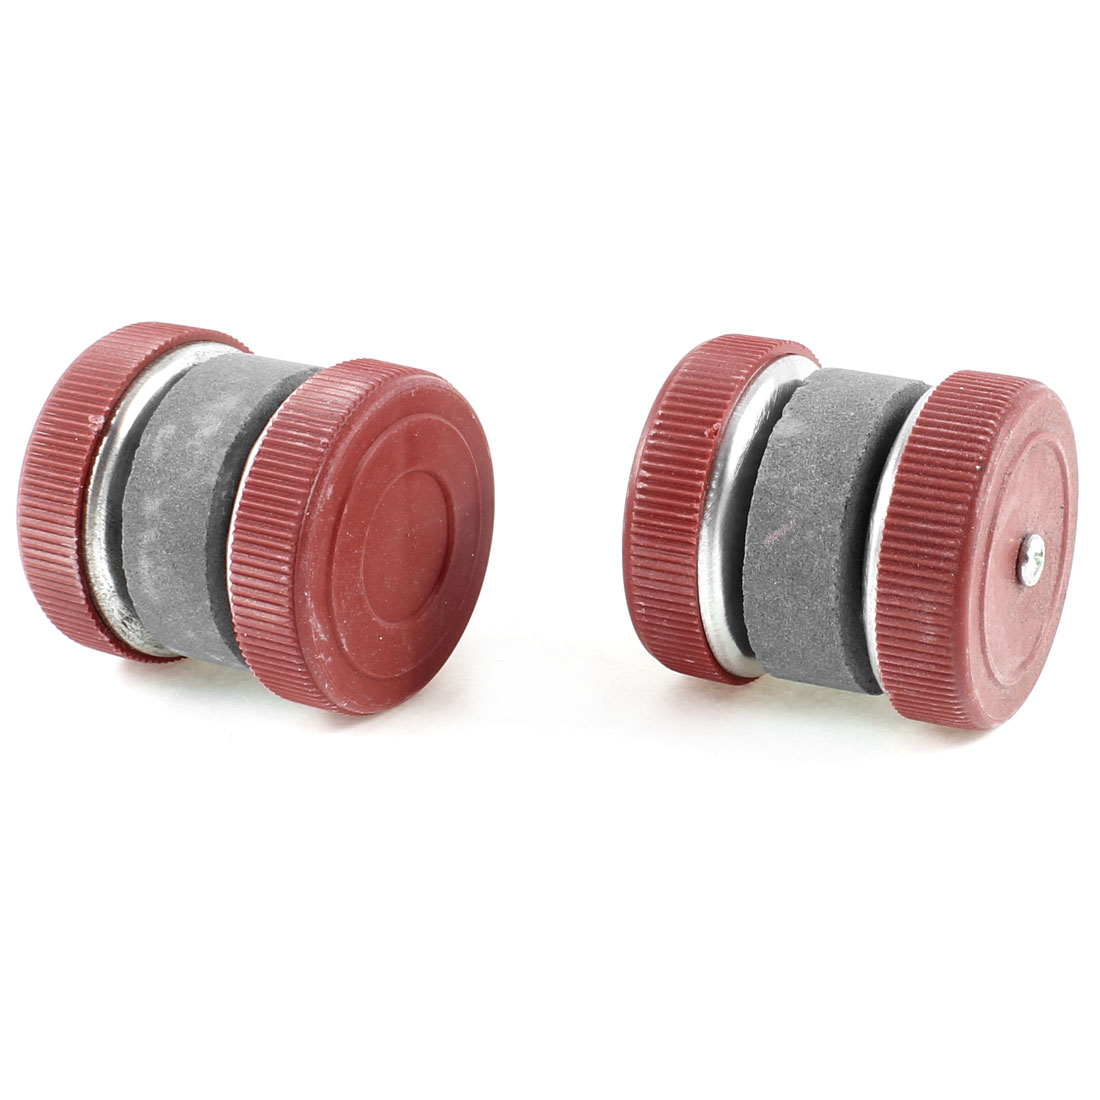 2 Pcs Kitchen Plastic Wheel Grinding Cutter Sharping Whetstone Sharpener Tool Red